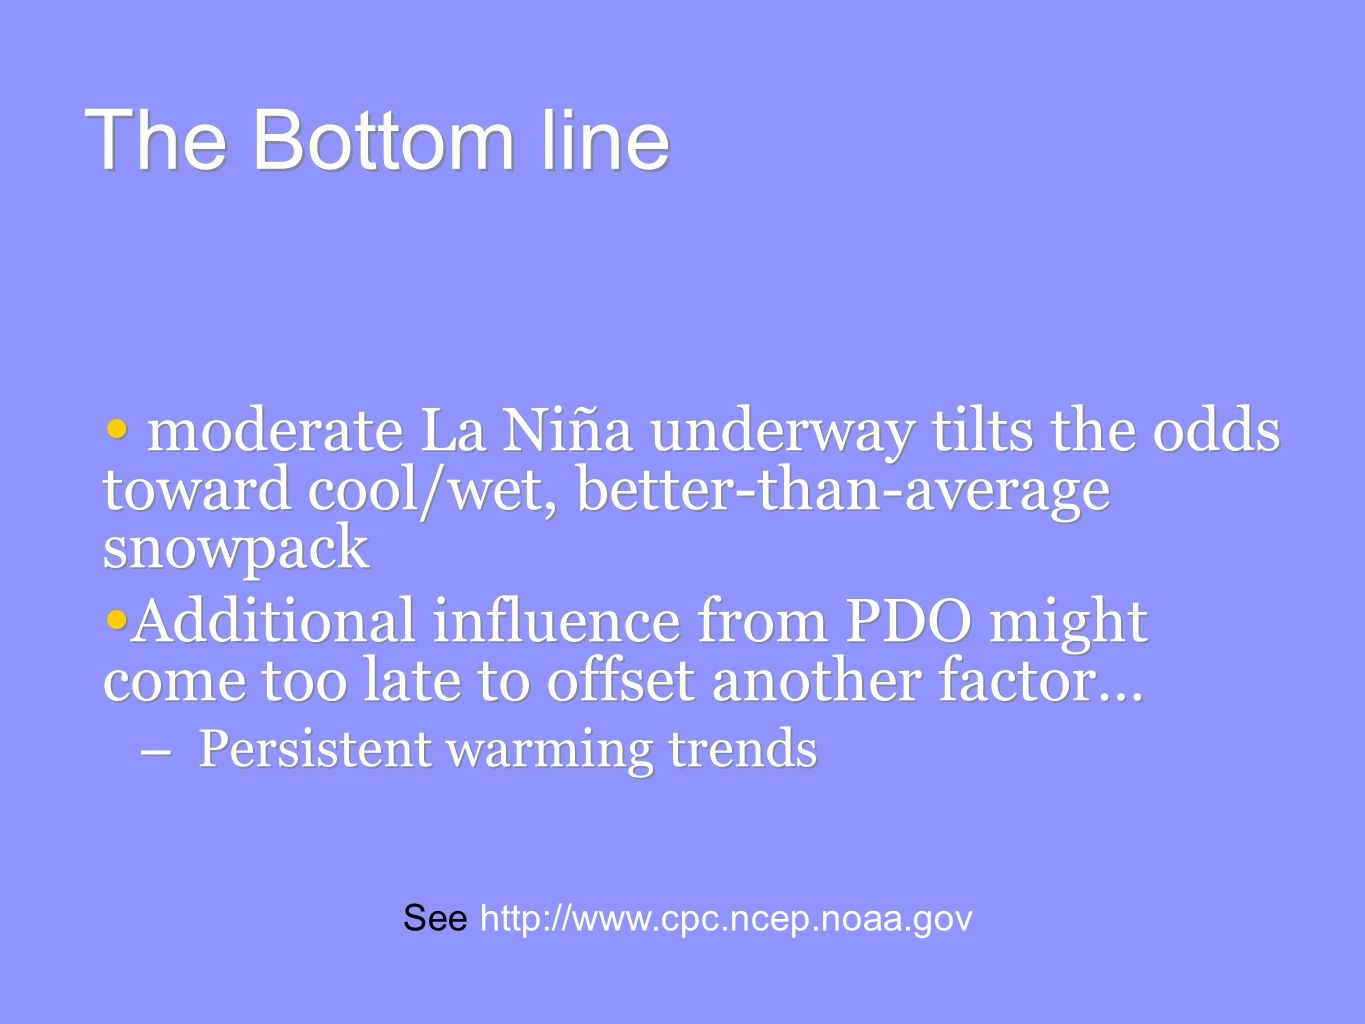 The Bottom line moderate La Niña underway tilts the odds toward cool/wet, better-than-average snowpack Additional influence from PDO might come too late to offset another factor… – Persistent warming trends moderate La Niña underway tilts the odds toward cool/wet, better-than-average snowpack Additional influence from PDO might come too late to offset another factor… – Persistent warming trends See